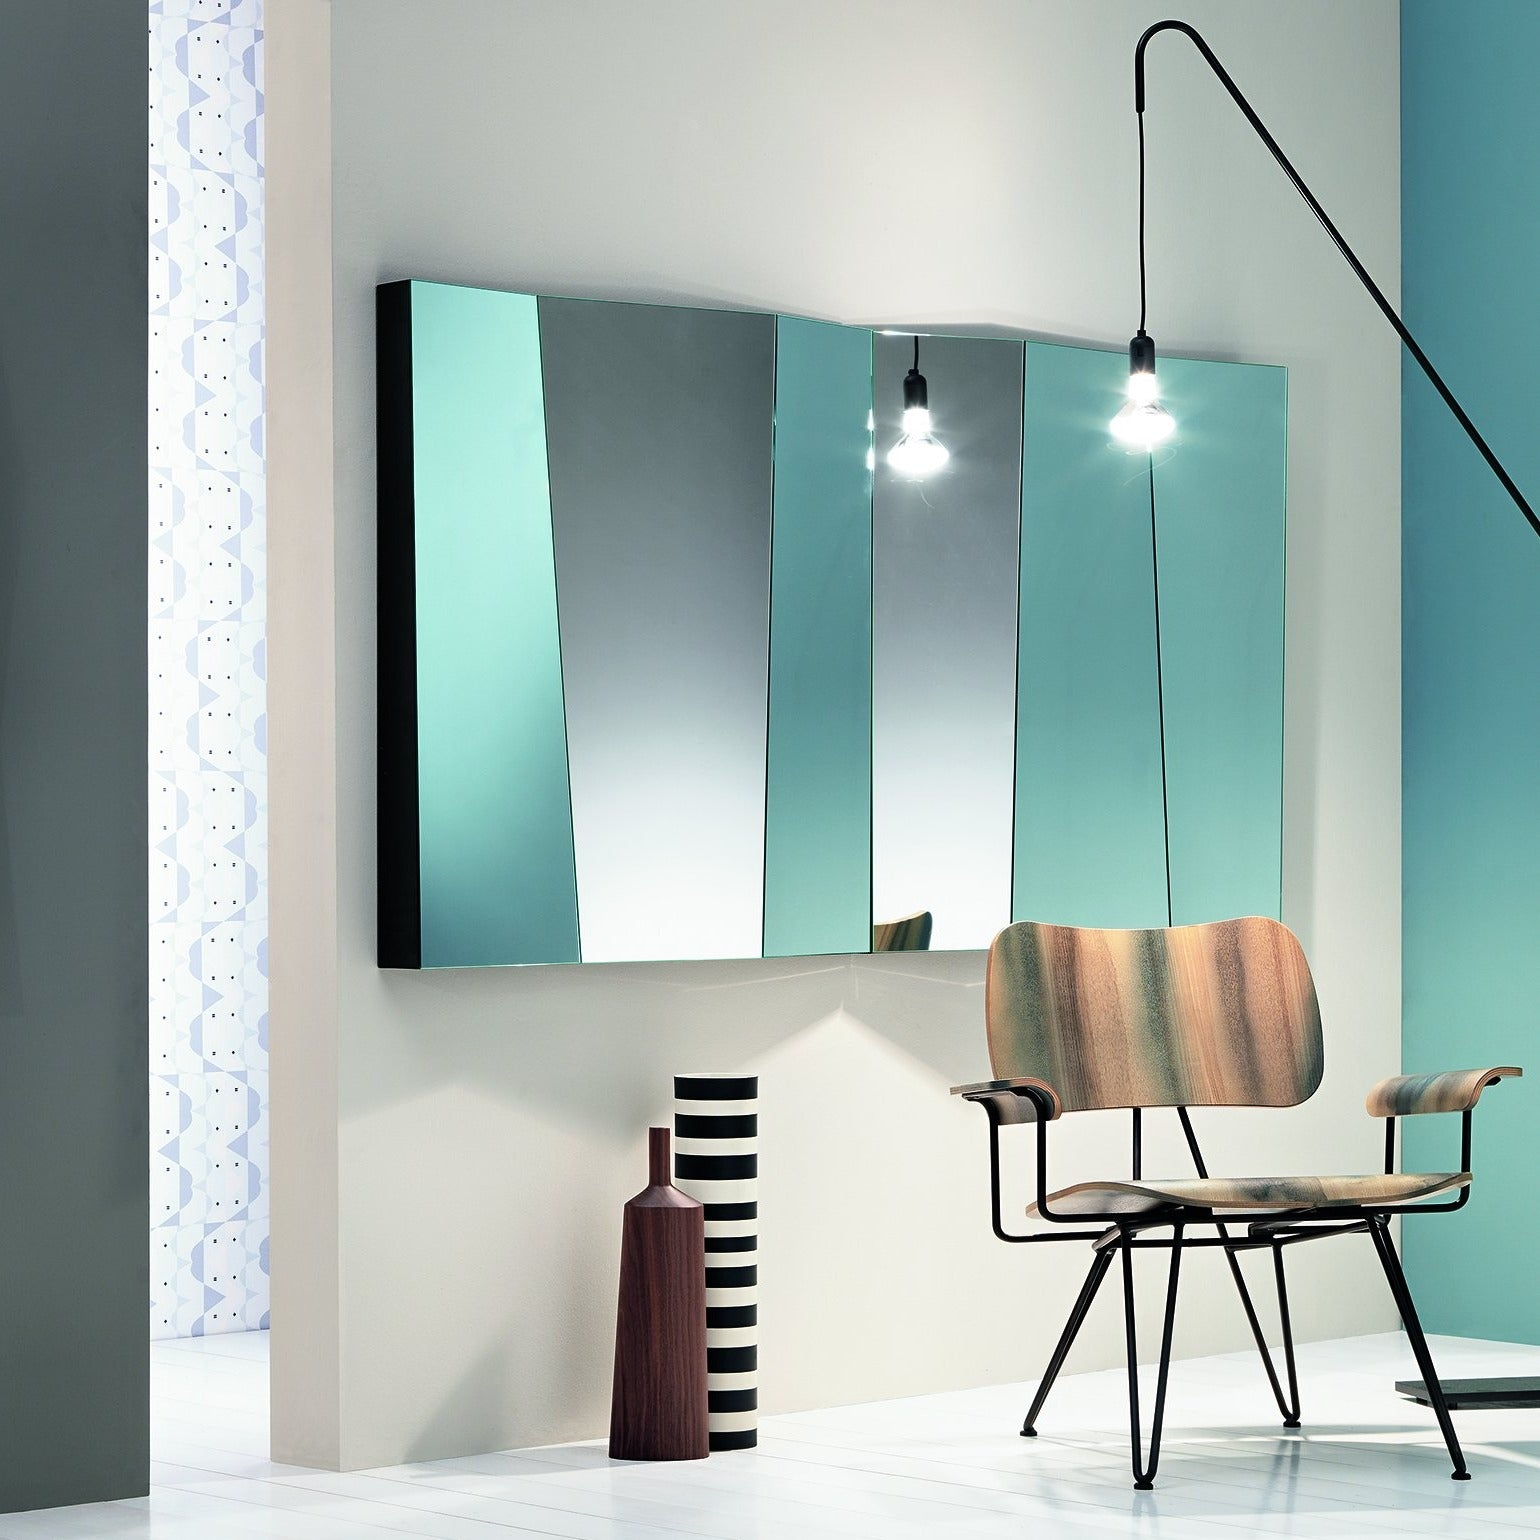 2No. mirrors aligned, size : 98 x 9 x h 98 cm.